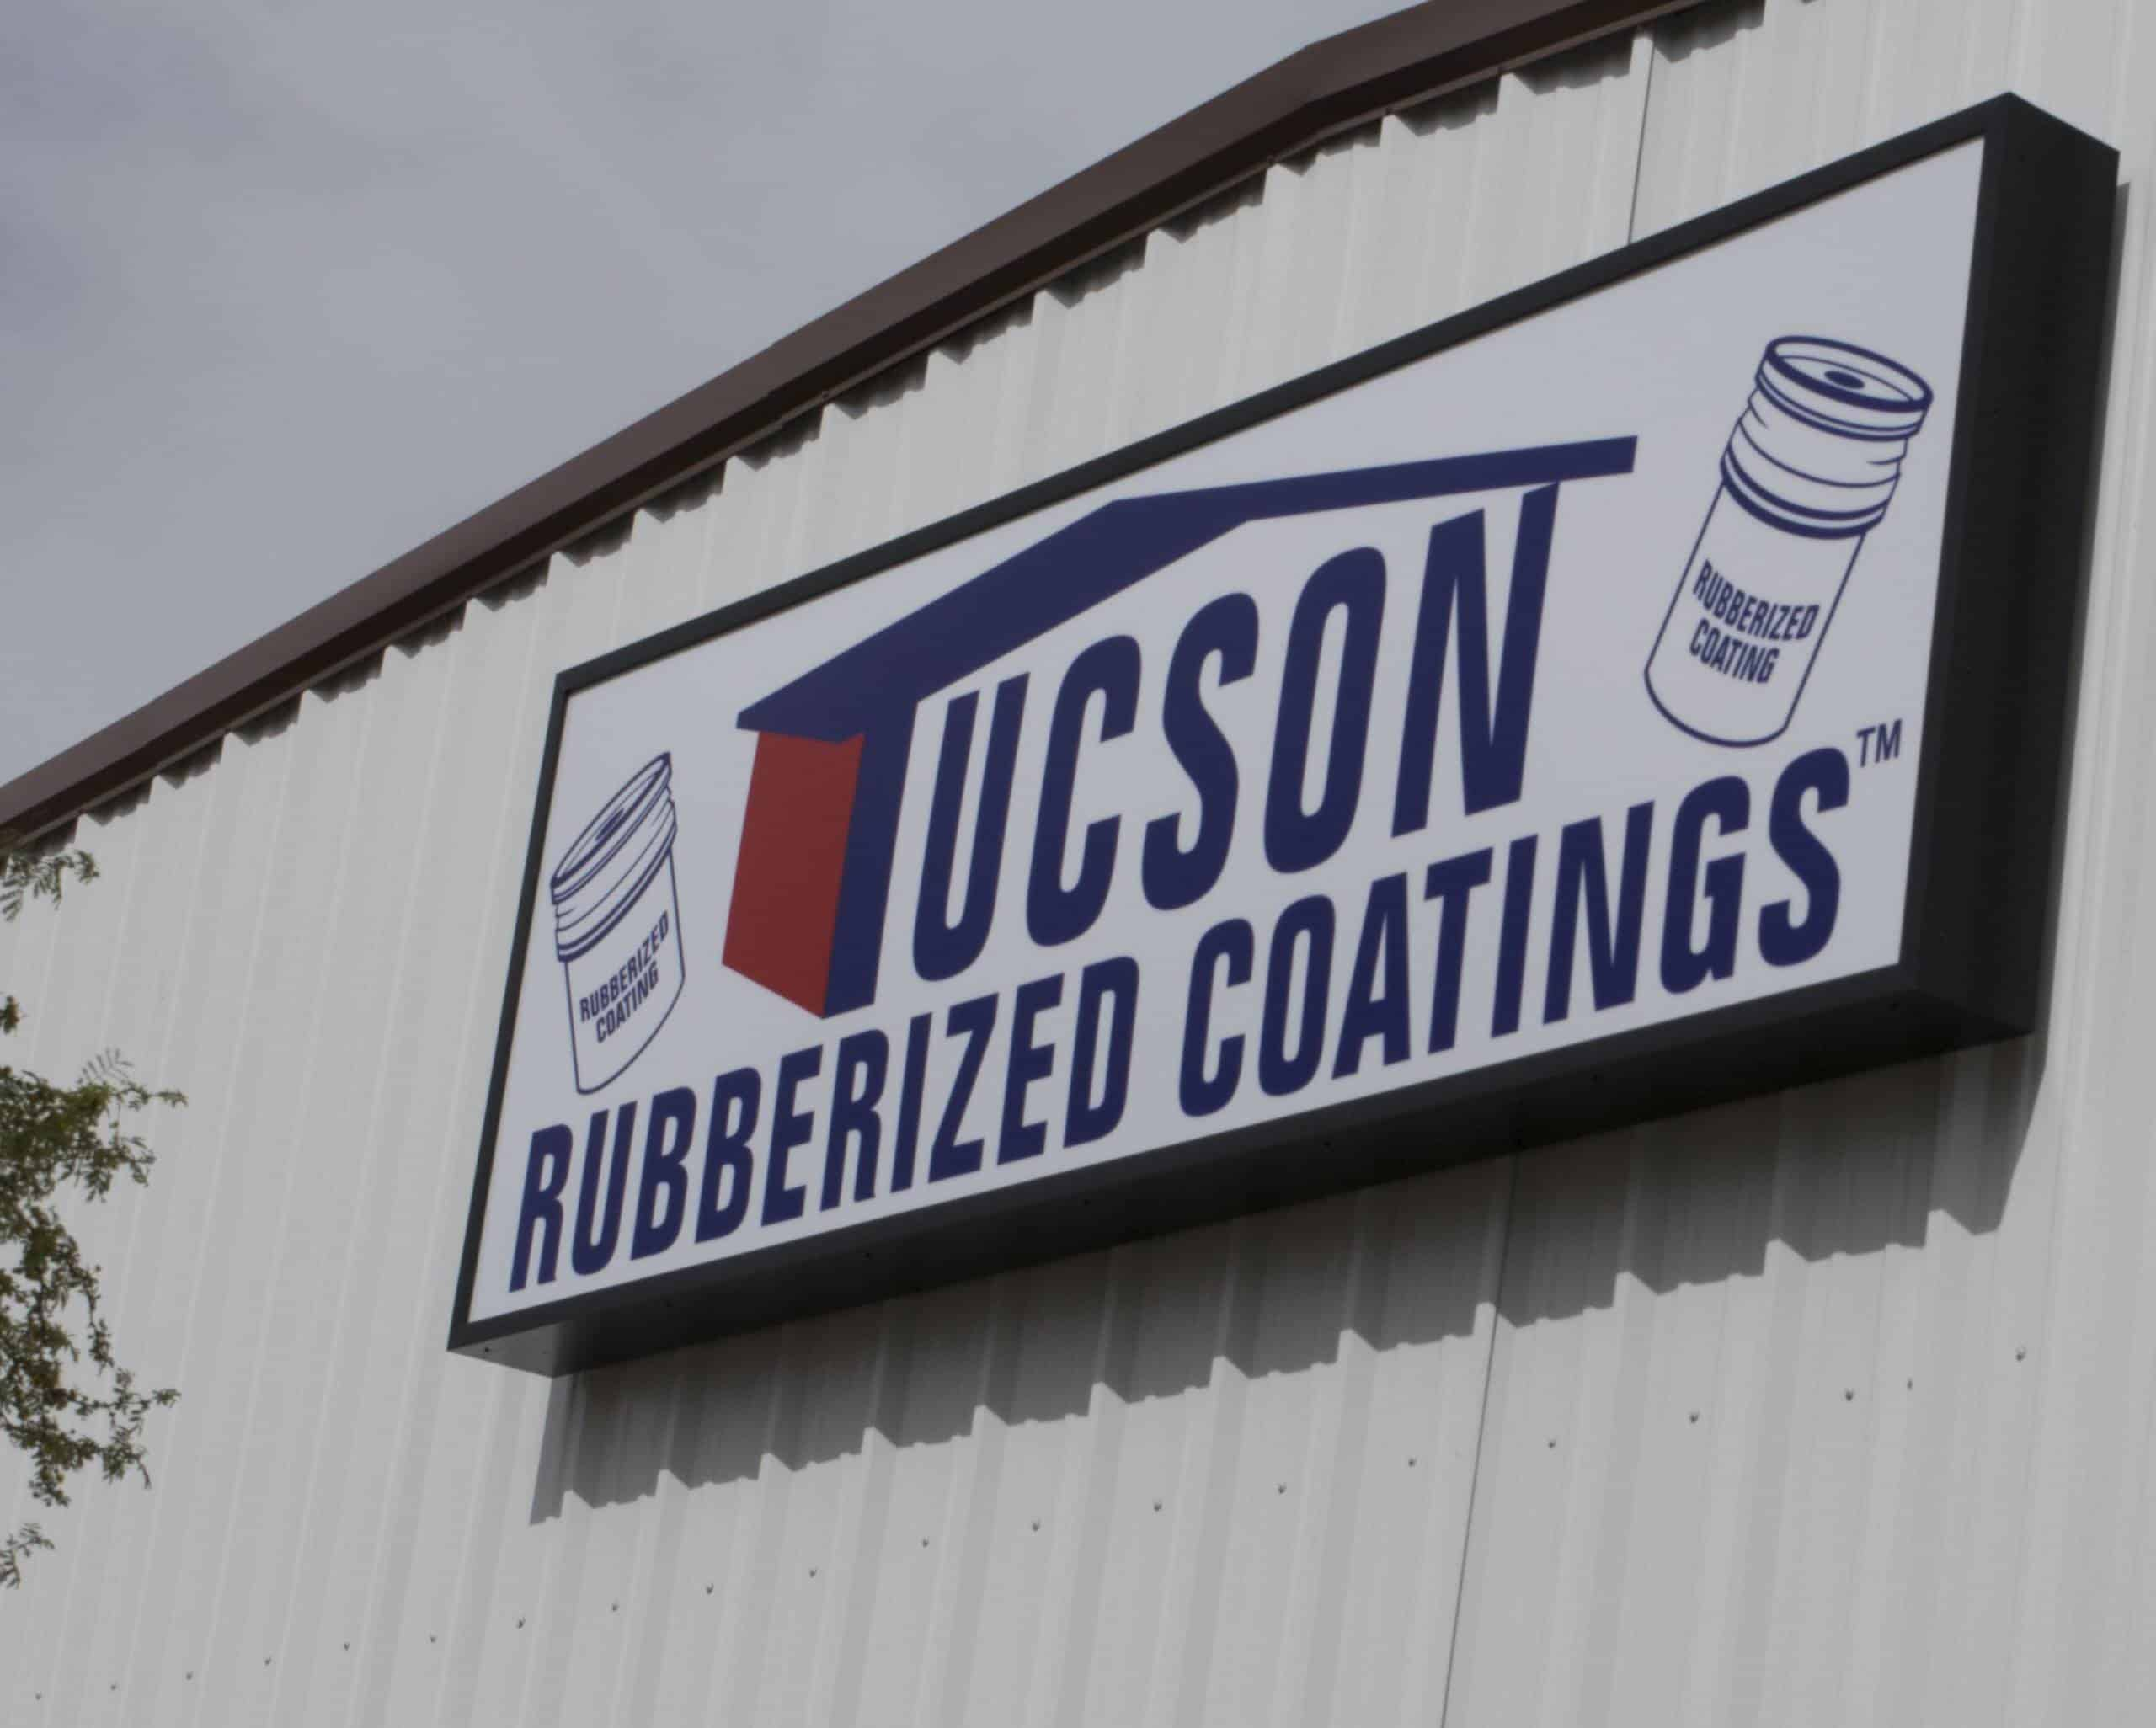 Roof Coating Material Company Image